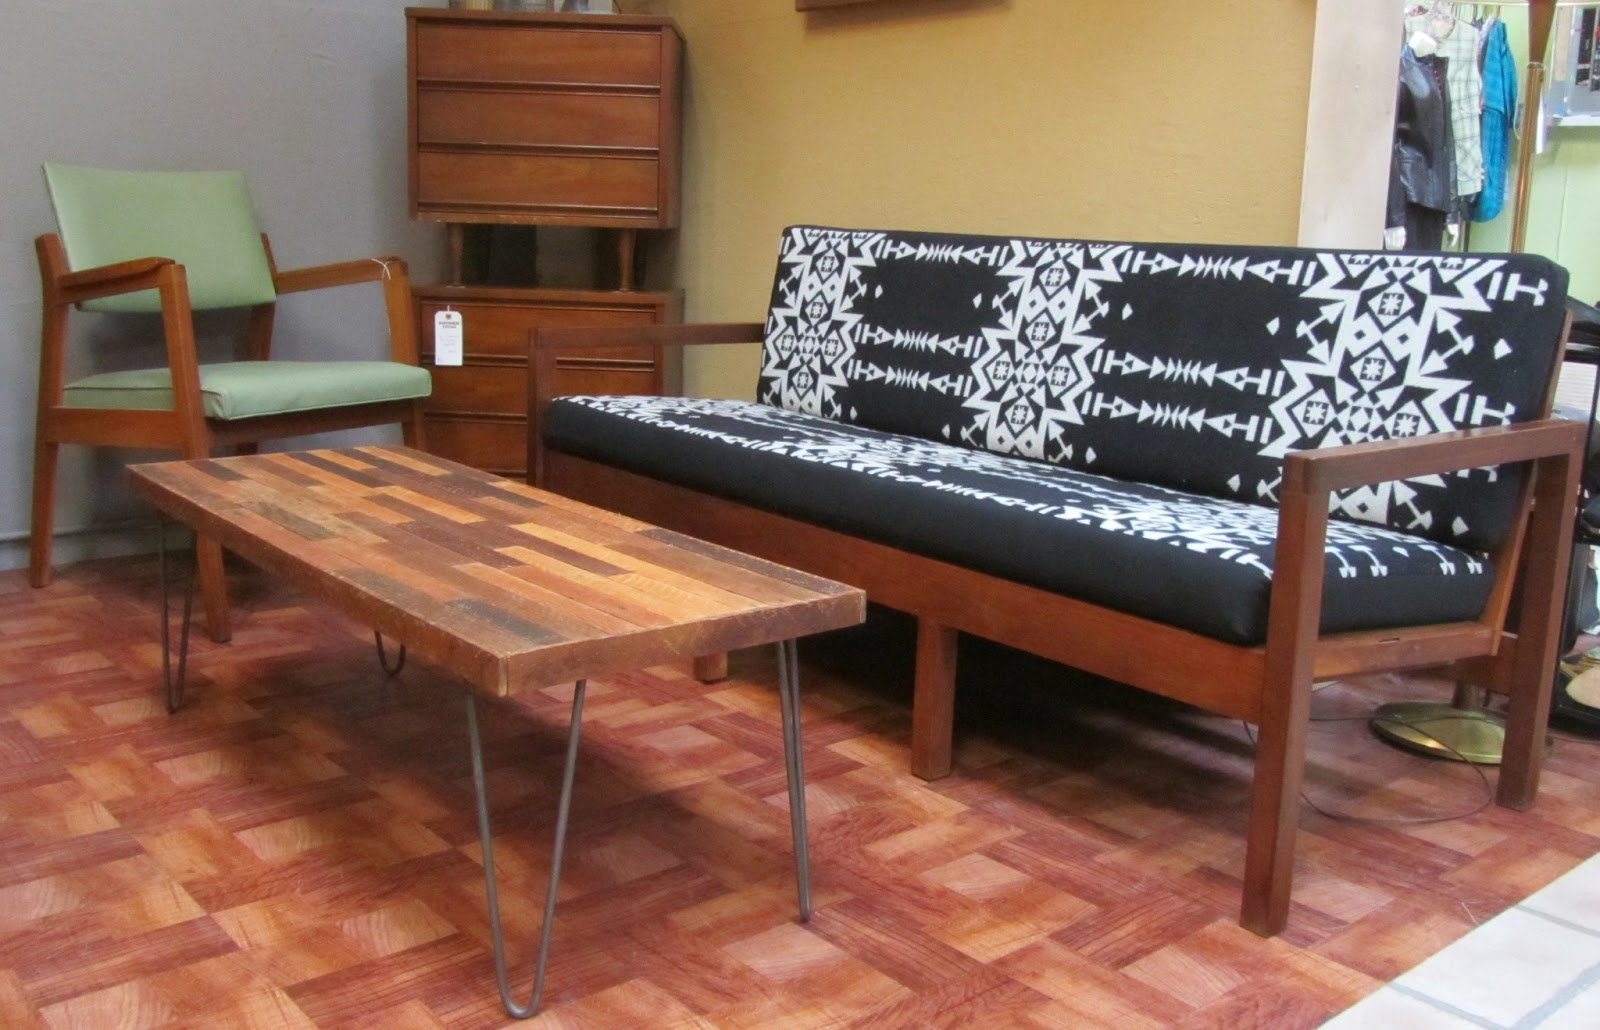 Mid century modern furniture portland or elegant interior Reclaimed wood furniture portland